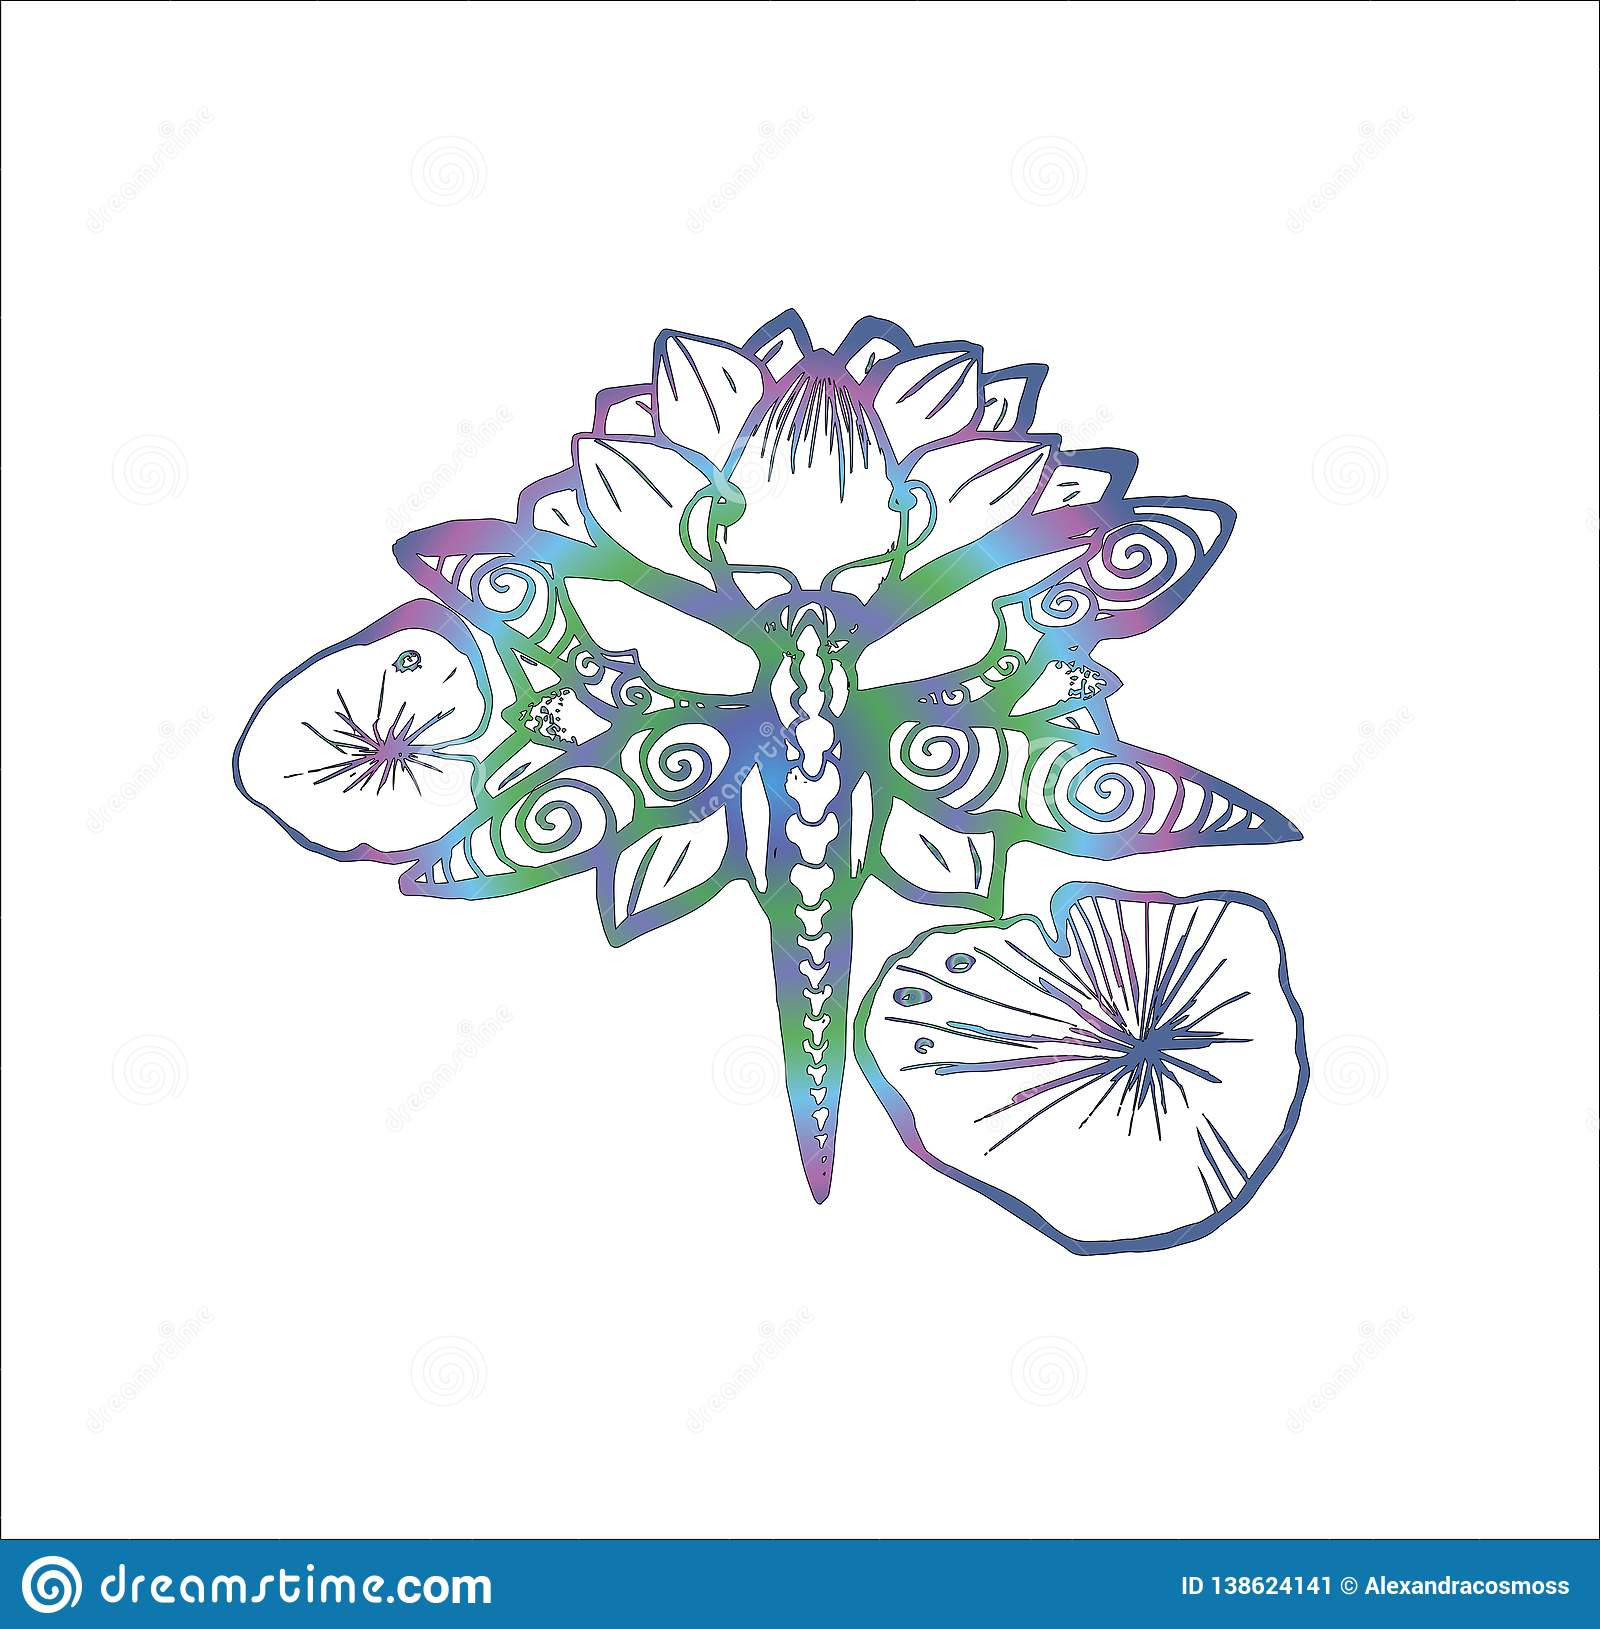 Color Neon Illustration Of A Dragonfly On A Lotus Tattoo Idea